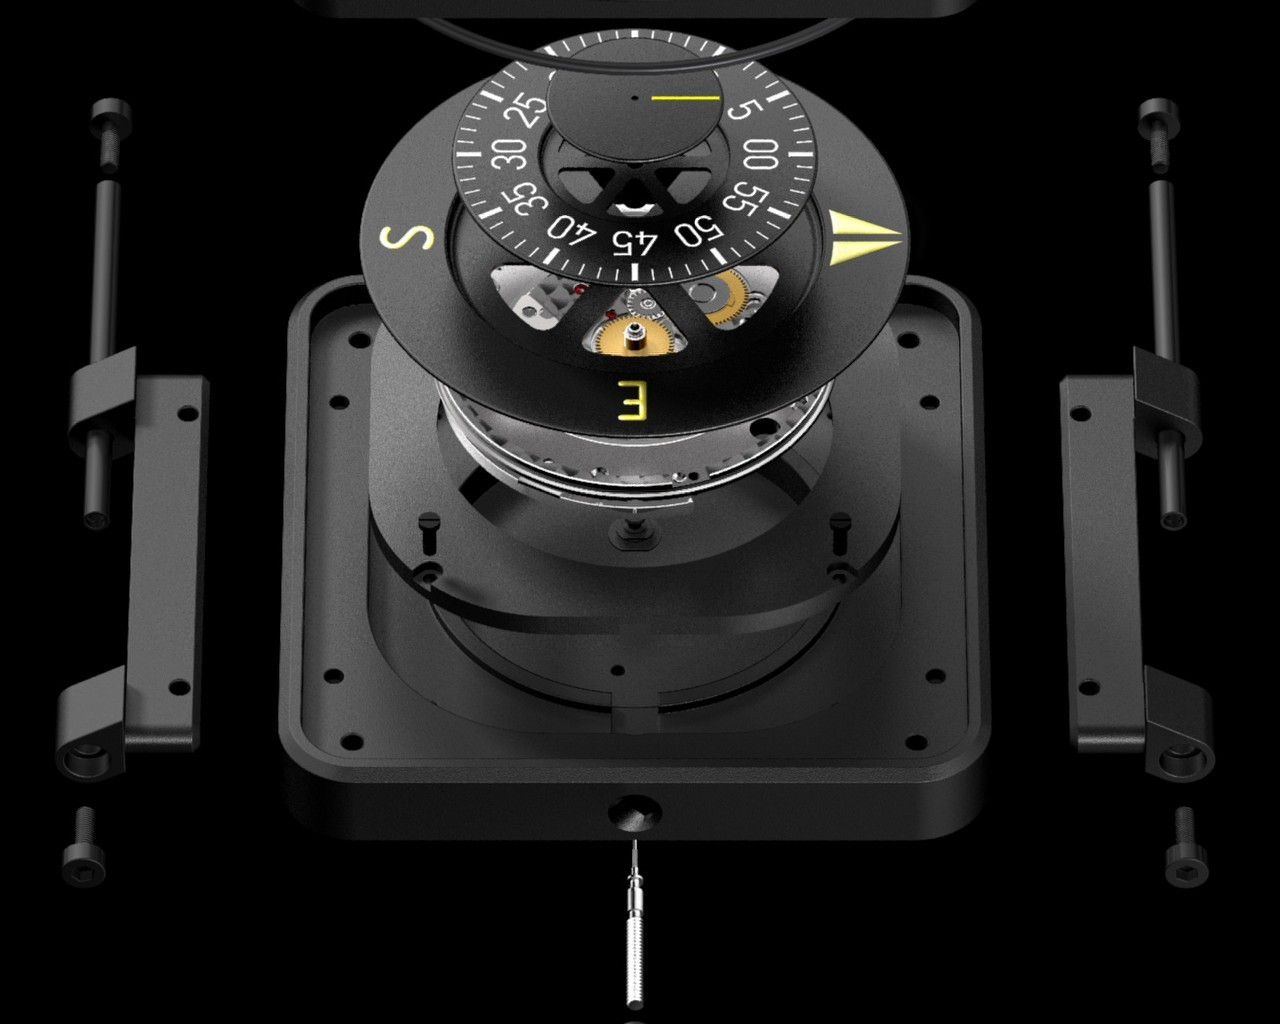 baselworld-2013-bell-ross-collezione-aviaton-br01-heading-indicator_0-100_3